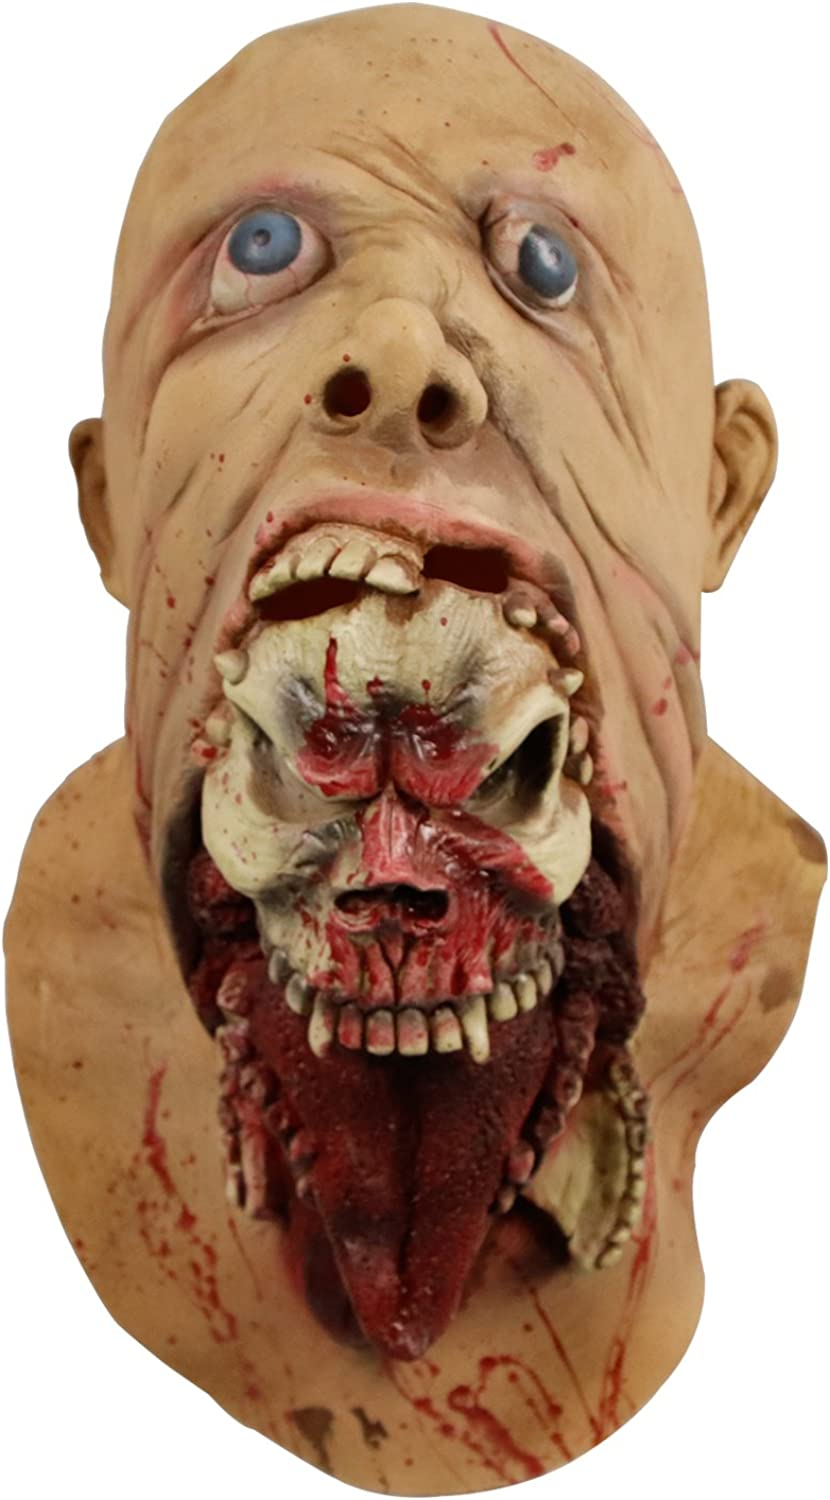 molezu Blurp Charlie Mask, Gruesome Parasite Mask, Scary Ghoulish Latex Mask for Halloween